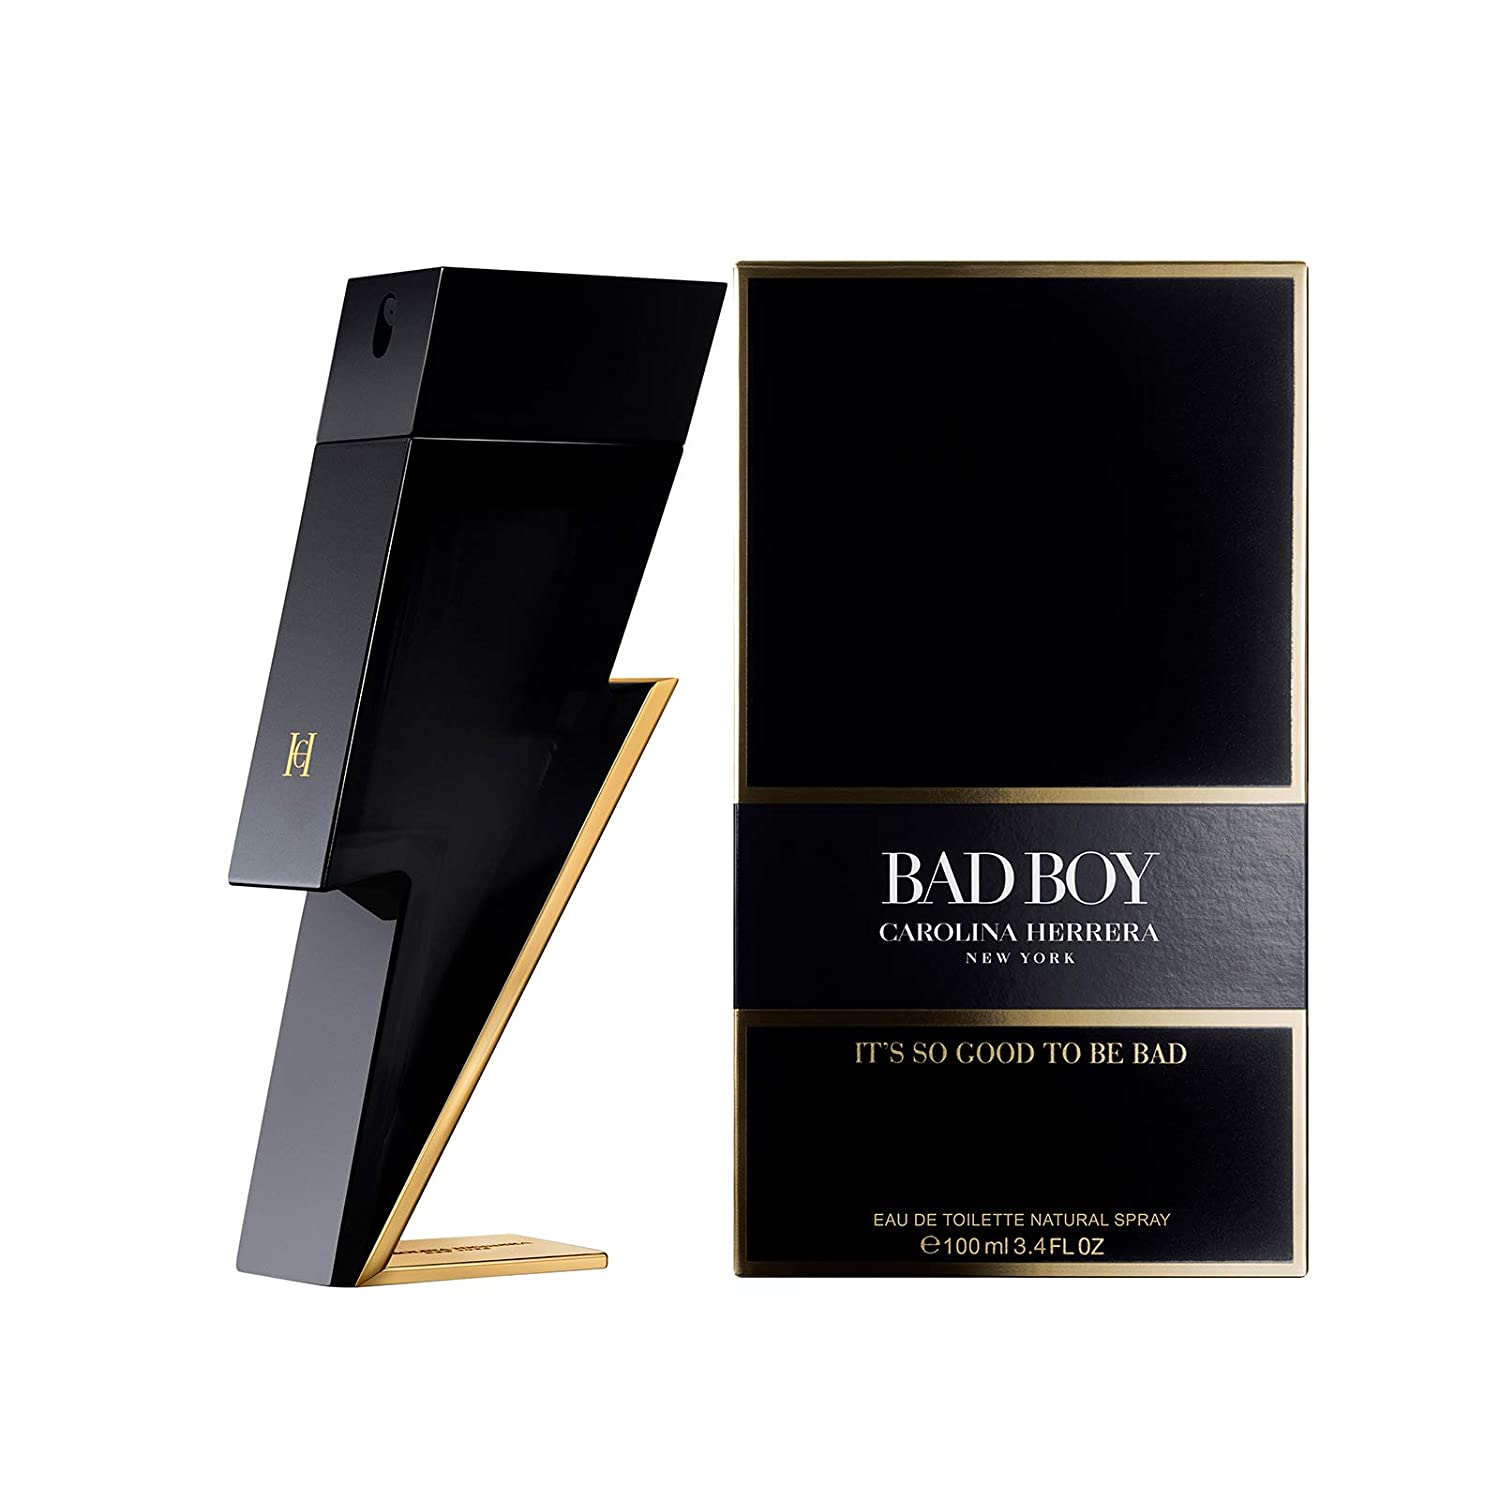 Carolina Herrera Bad Boy Edp Vapo, Black - 100 ml: Amazon.es